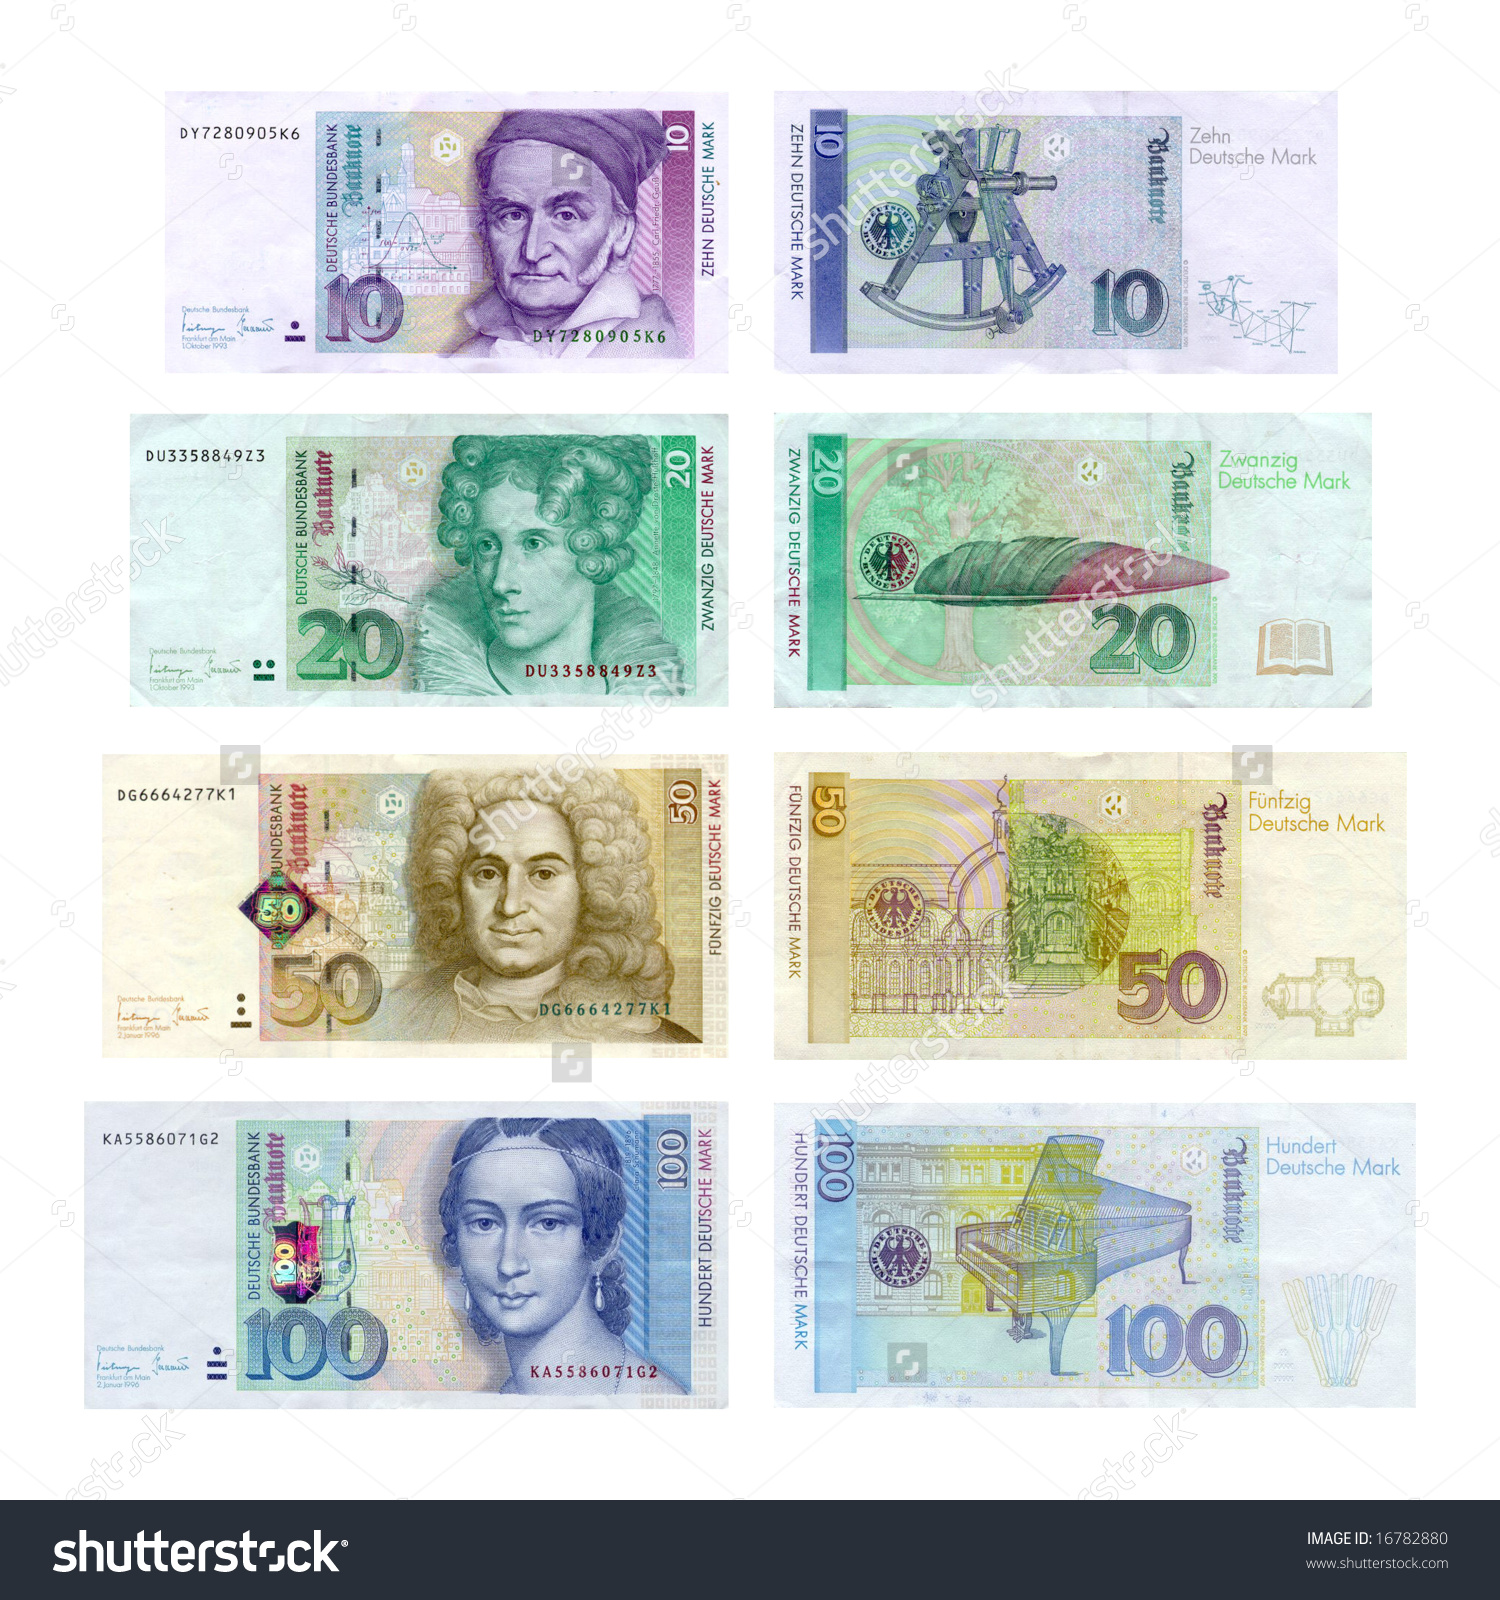 Old European Currency Deutsche Mark German Stock Photo 16782880.